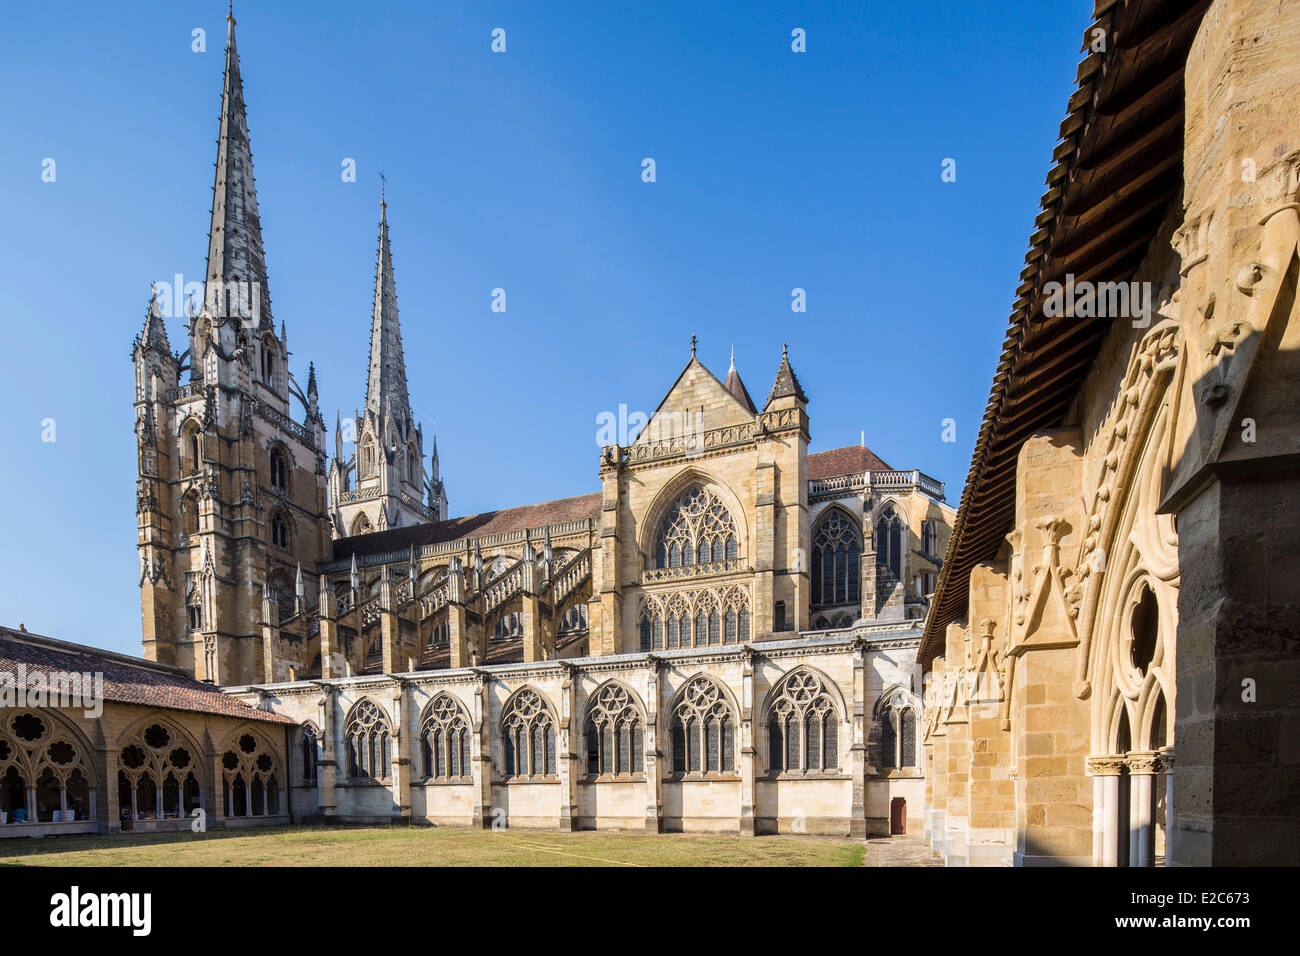 France, Pyrenees Atlantiques, Bayonne, convent and the cathedral Saint Marie - Stock Image